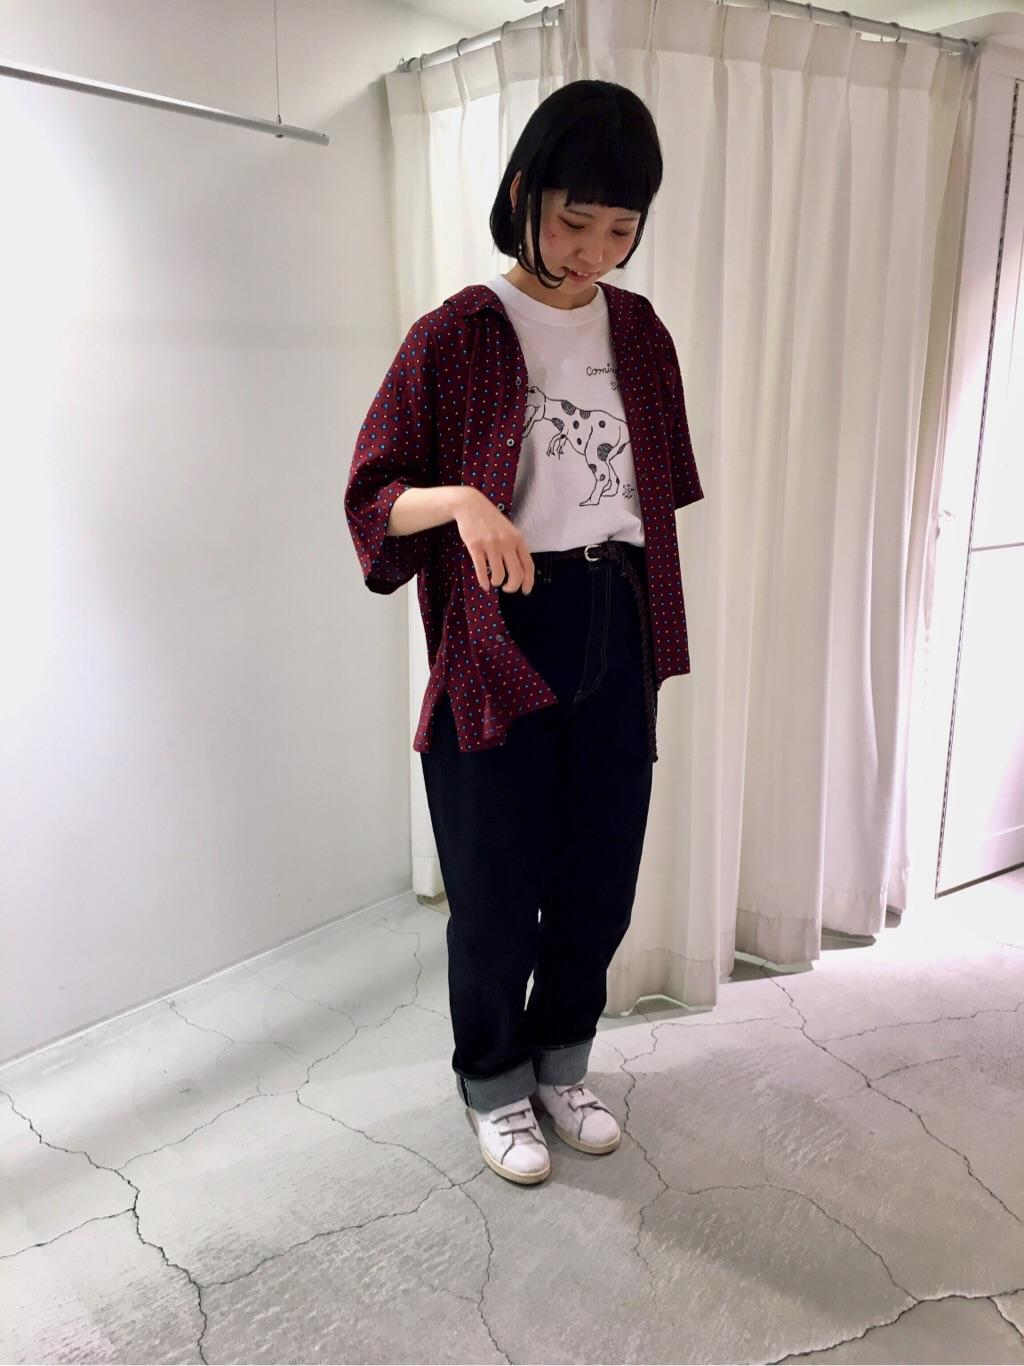 Dot and Stripes CHILD WOMAN 横浜モアーズ 身長:158cm 2019.05.09